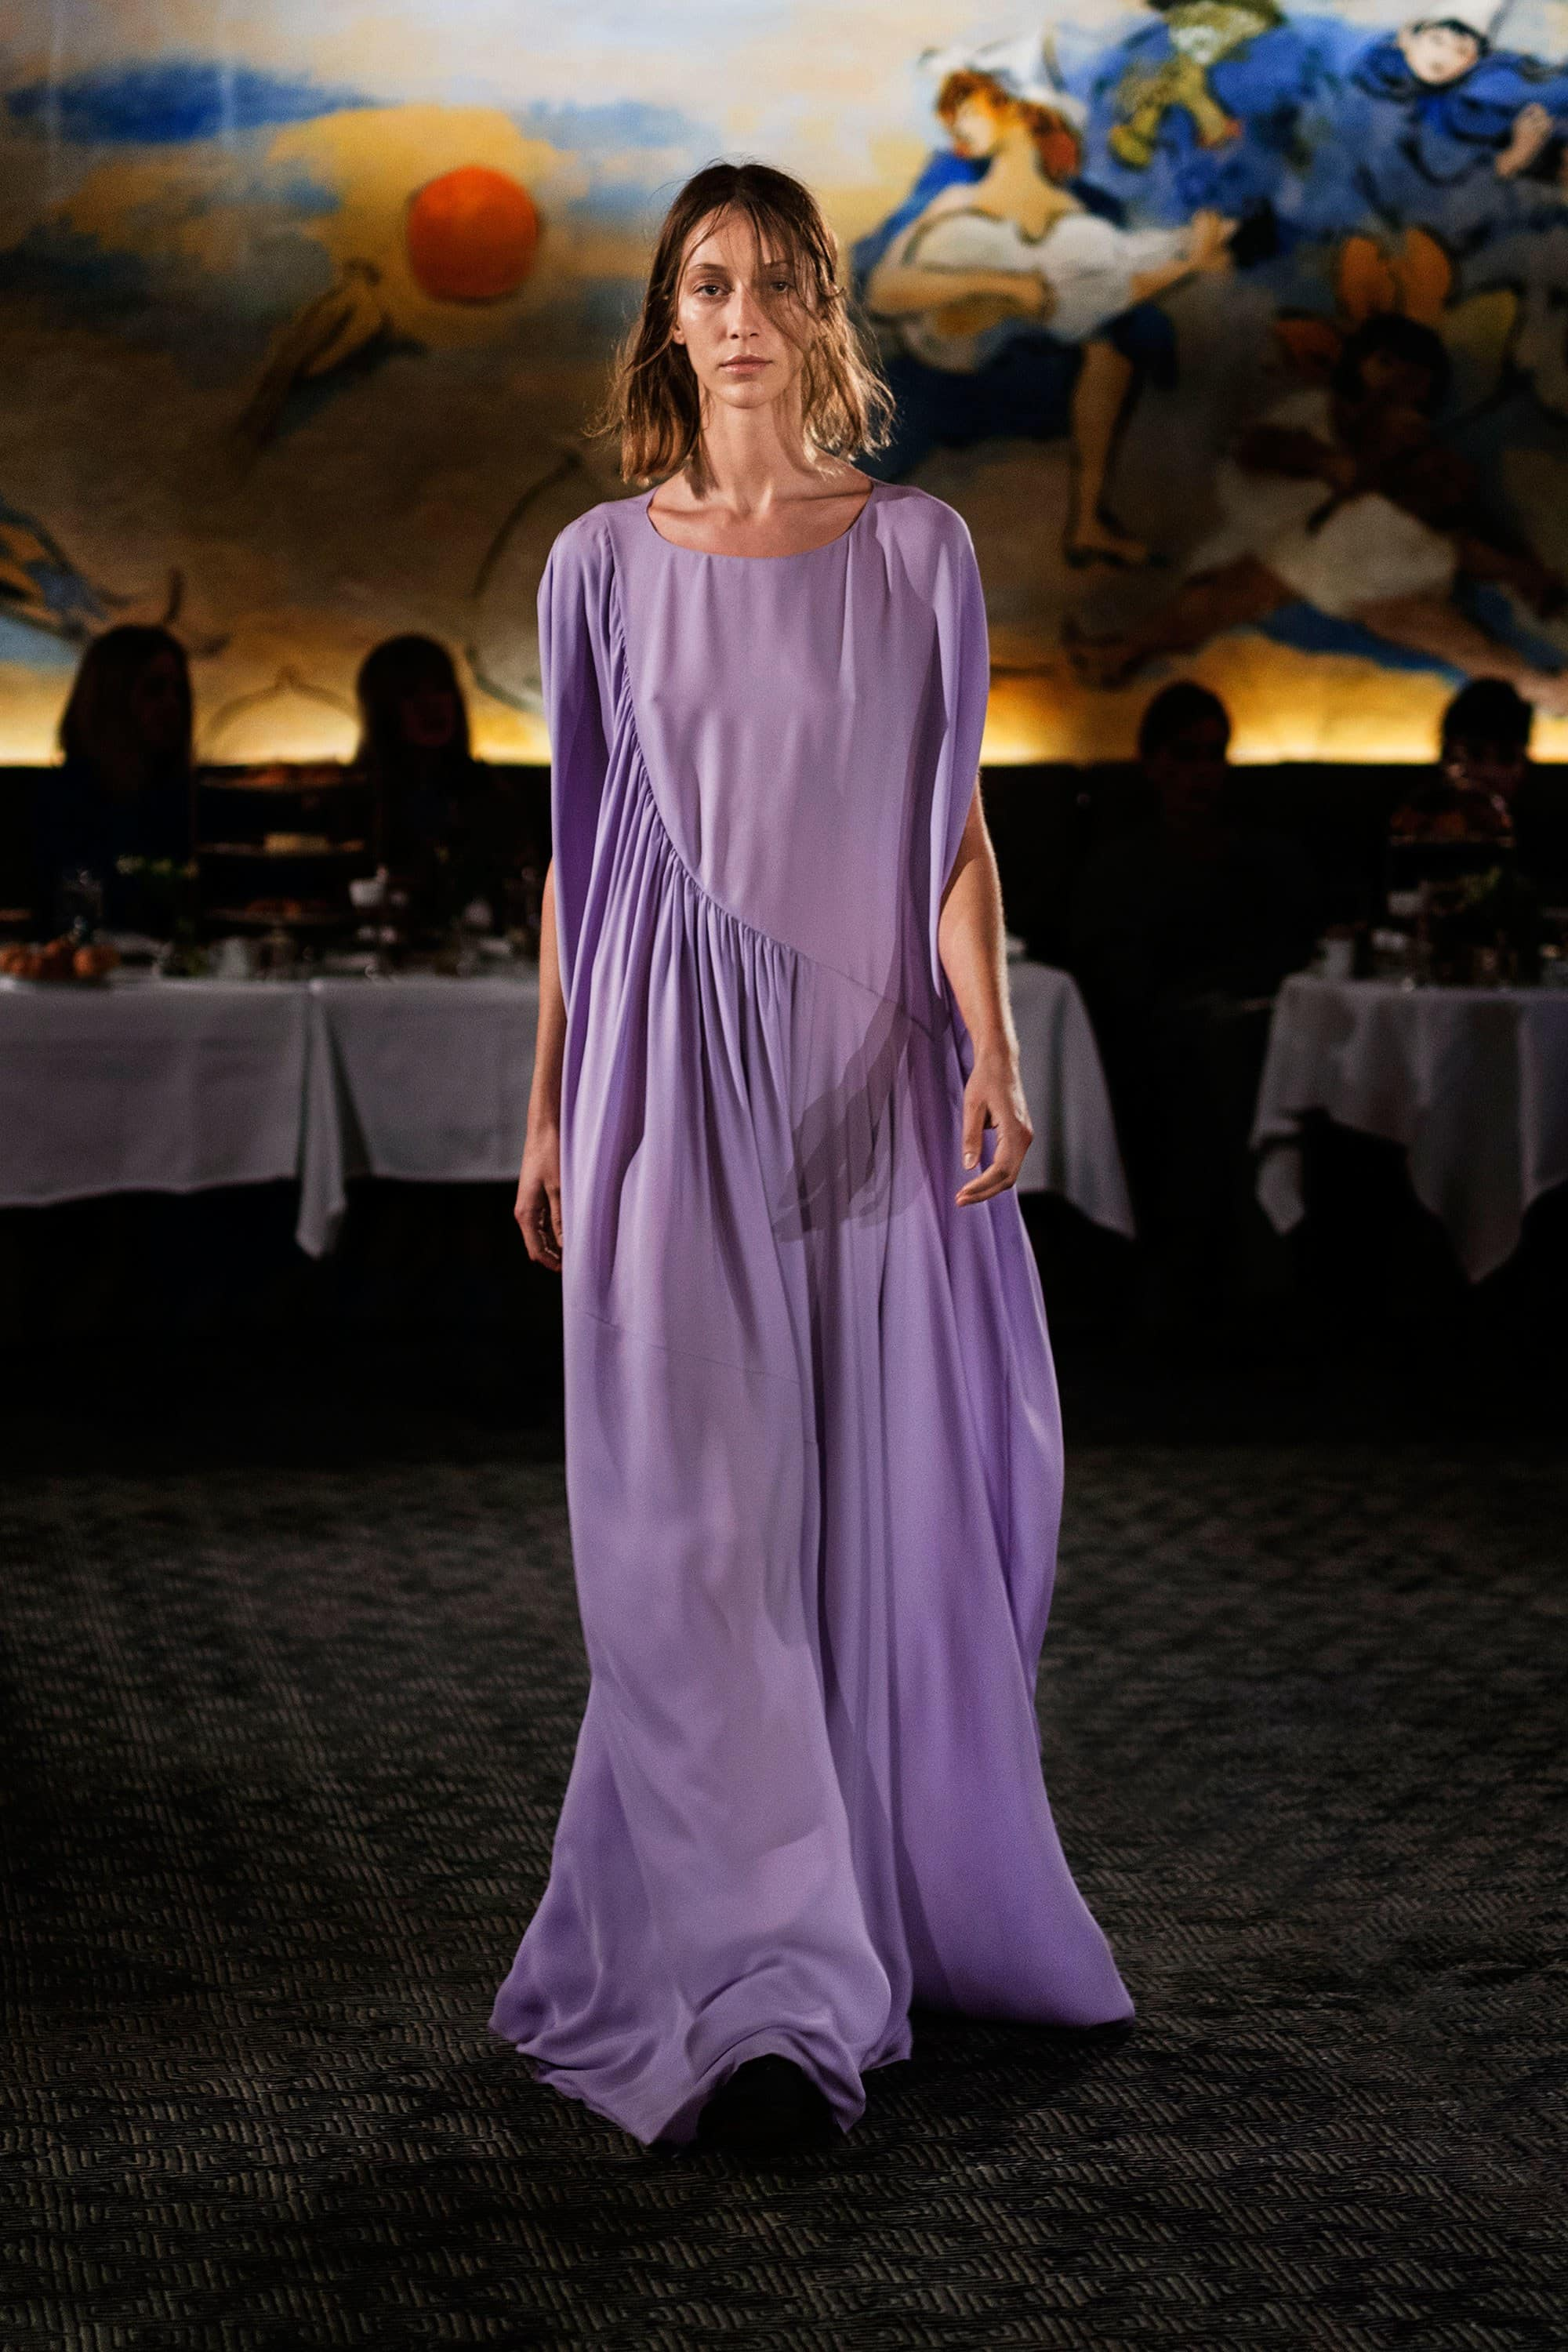 Purple, Lilac, Lavender, Outfit, Fashion, Fashion Show, Catwalk, Model, Model Life, Runway, Dress, Look, OOTD, Fashion Week, Trend Report, Trends, Trendy, SS18, Spring Summer 2018, NYFW, New York, New York Fashion Week, The Row